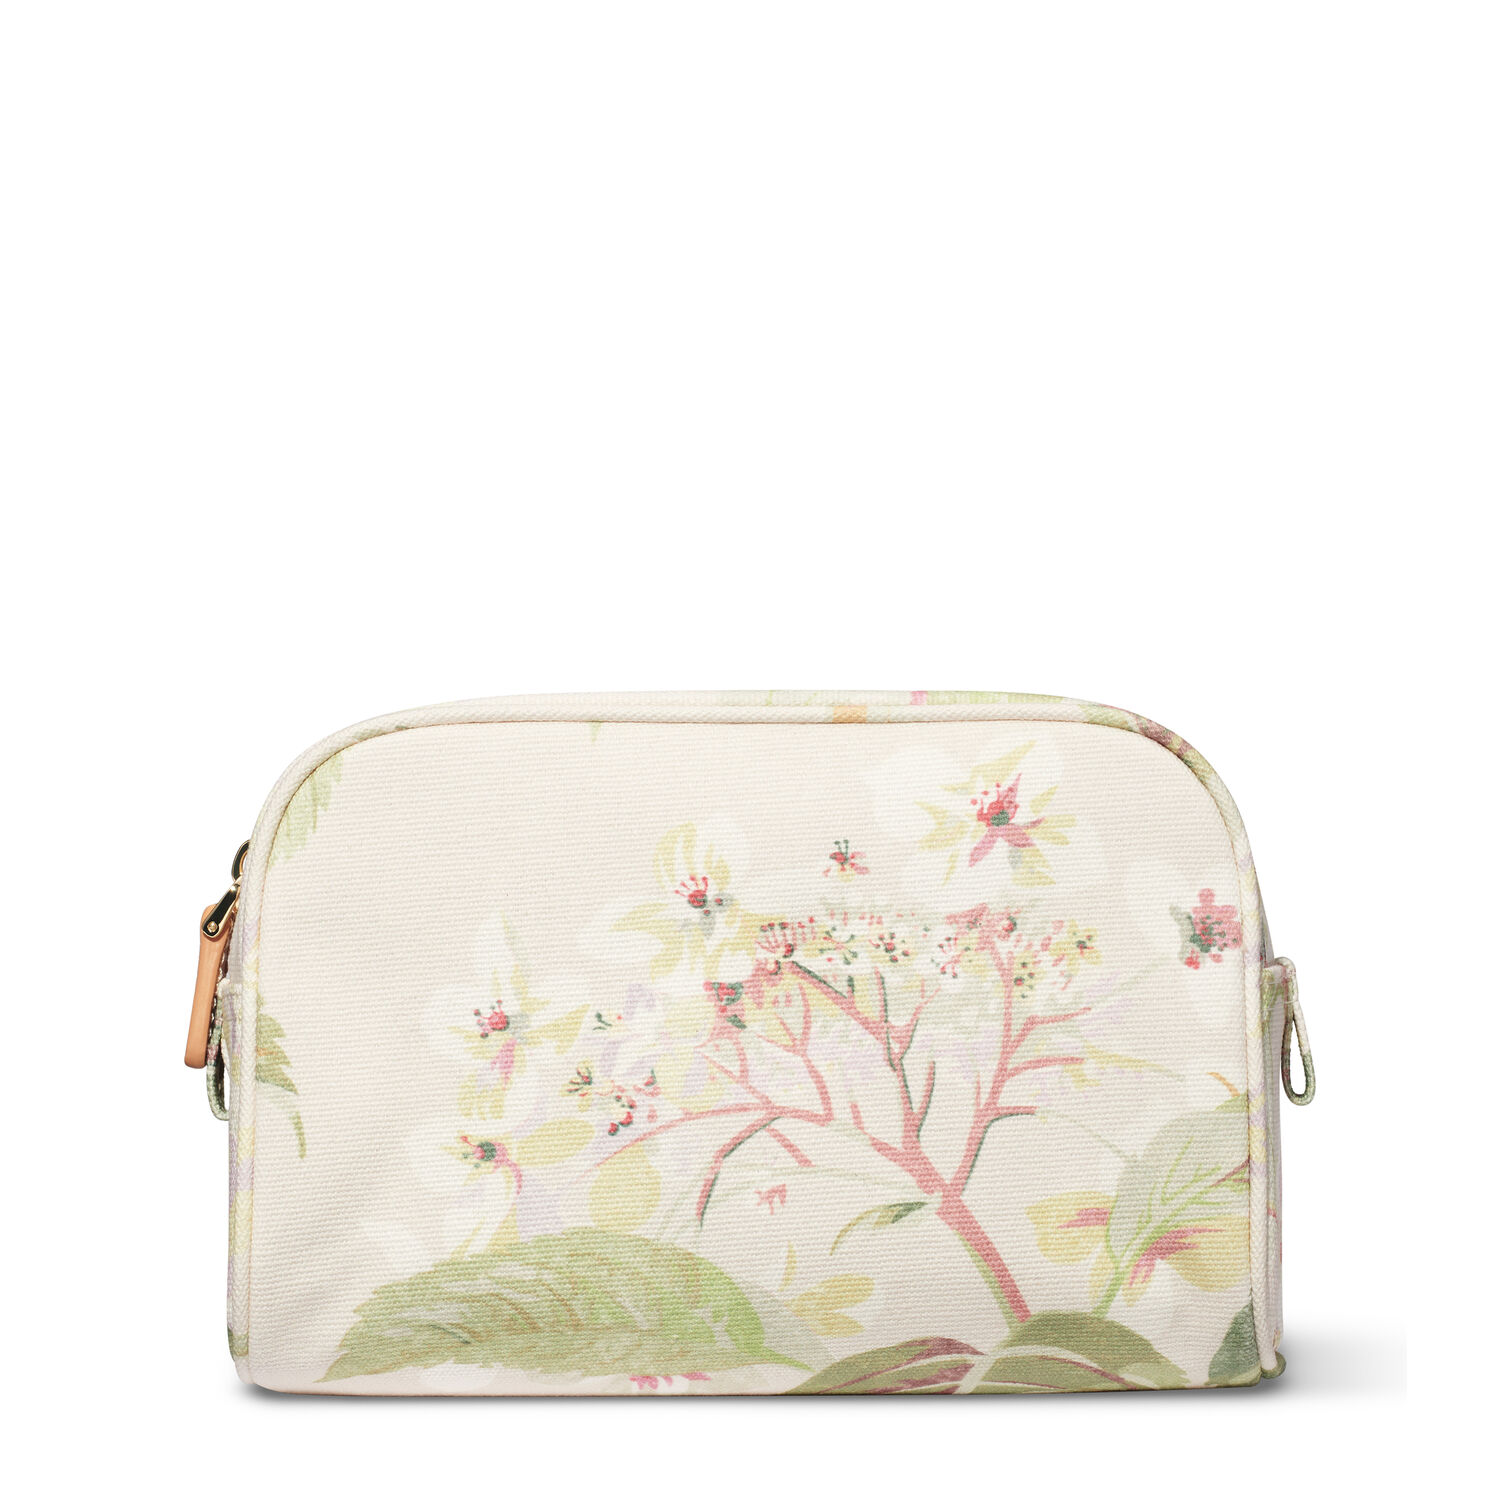 Eloise Small Cosmetic Bag